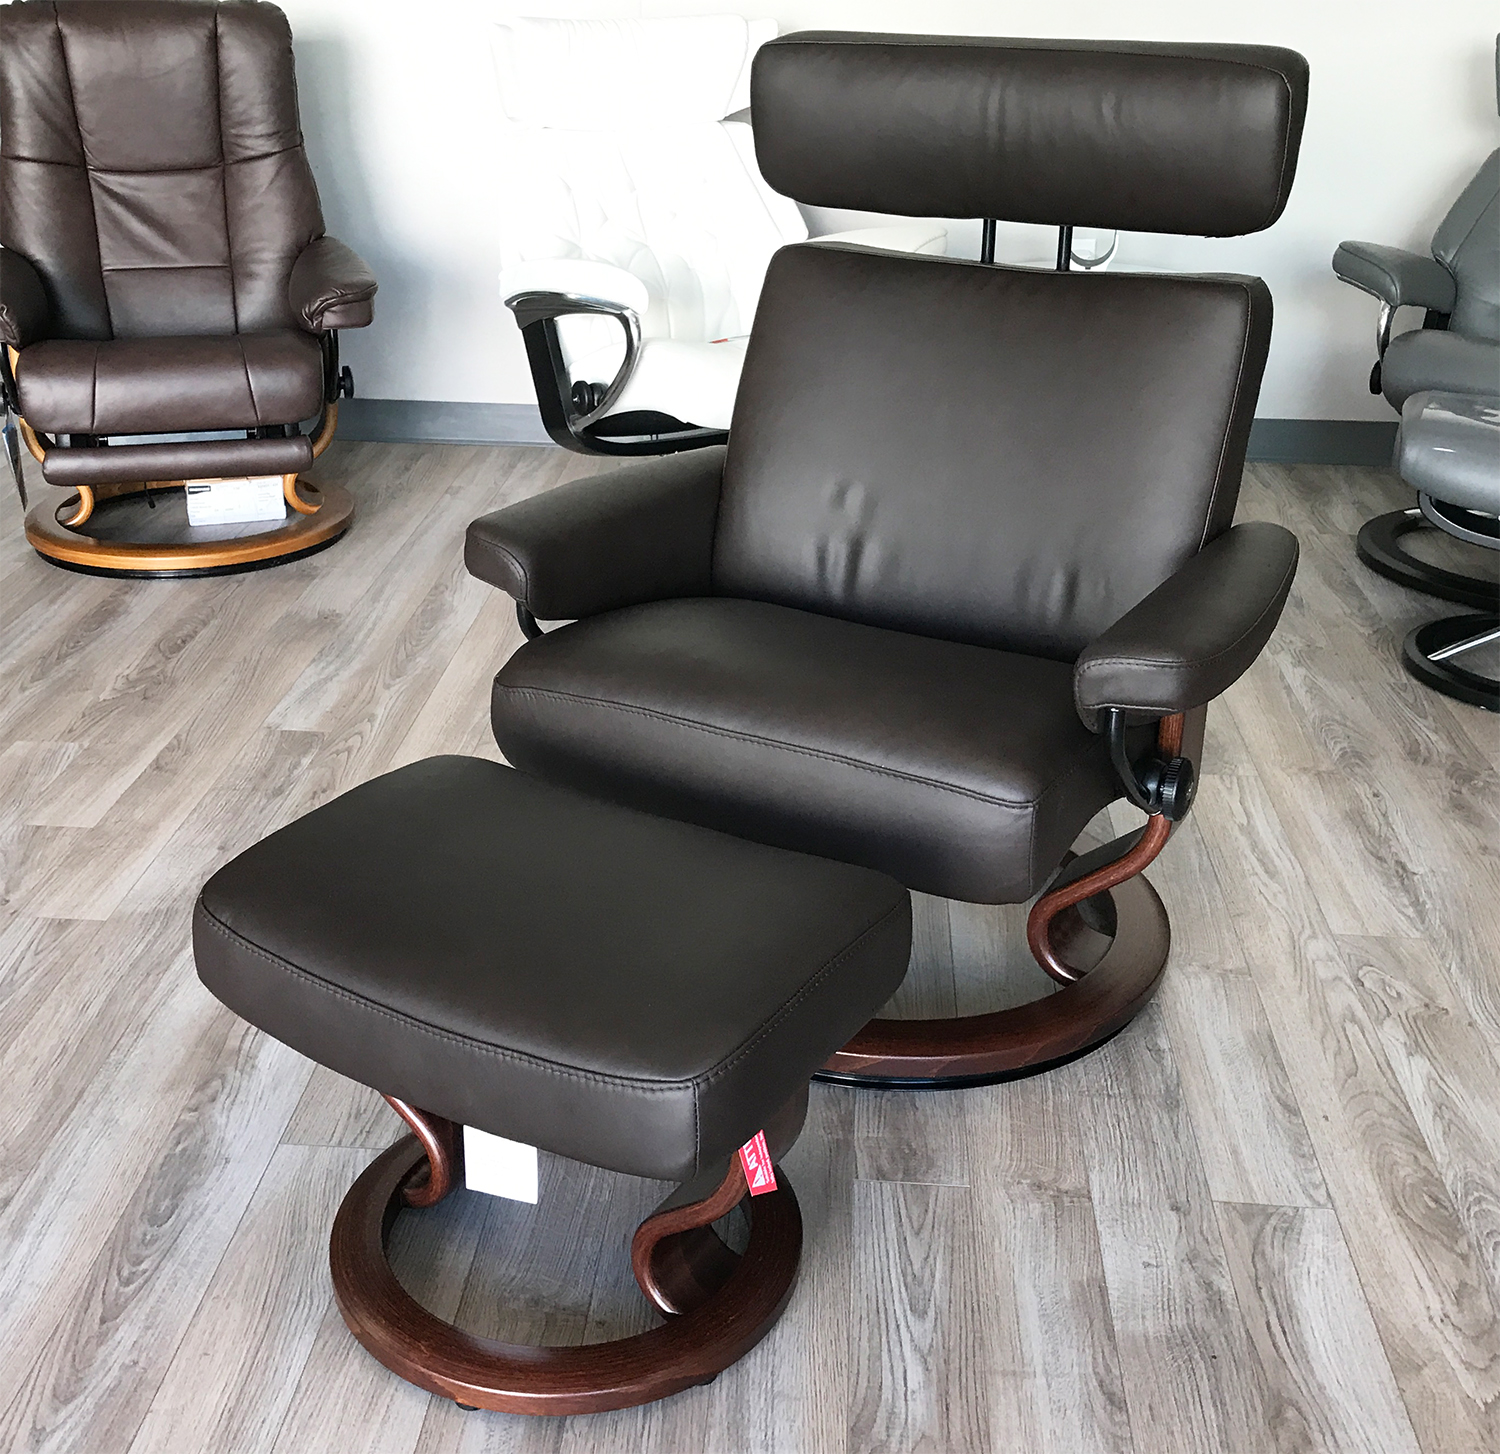 stressless large orion taurus paloma mocca leather recliner chair and ottoman by ekornes. Black Bedroom Furniture Sets. Home Design Ideas